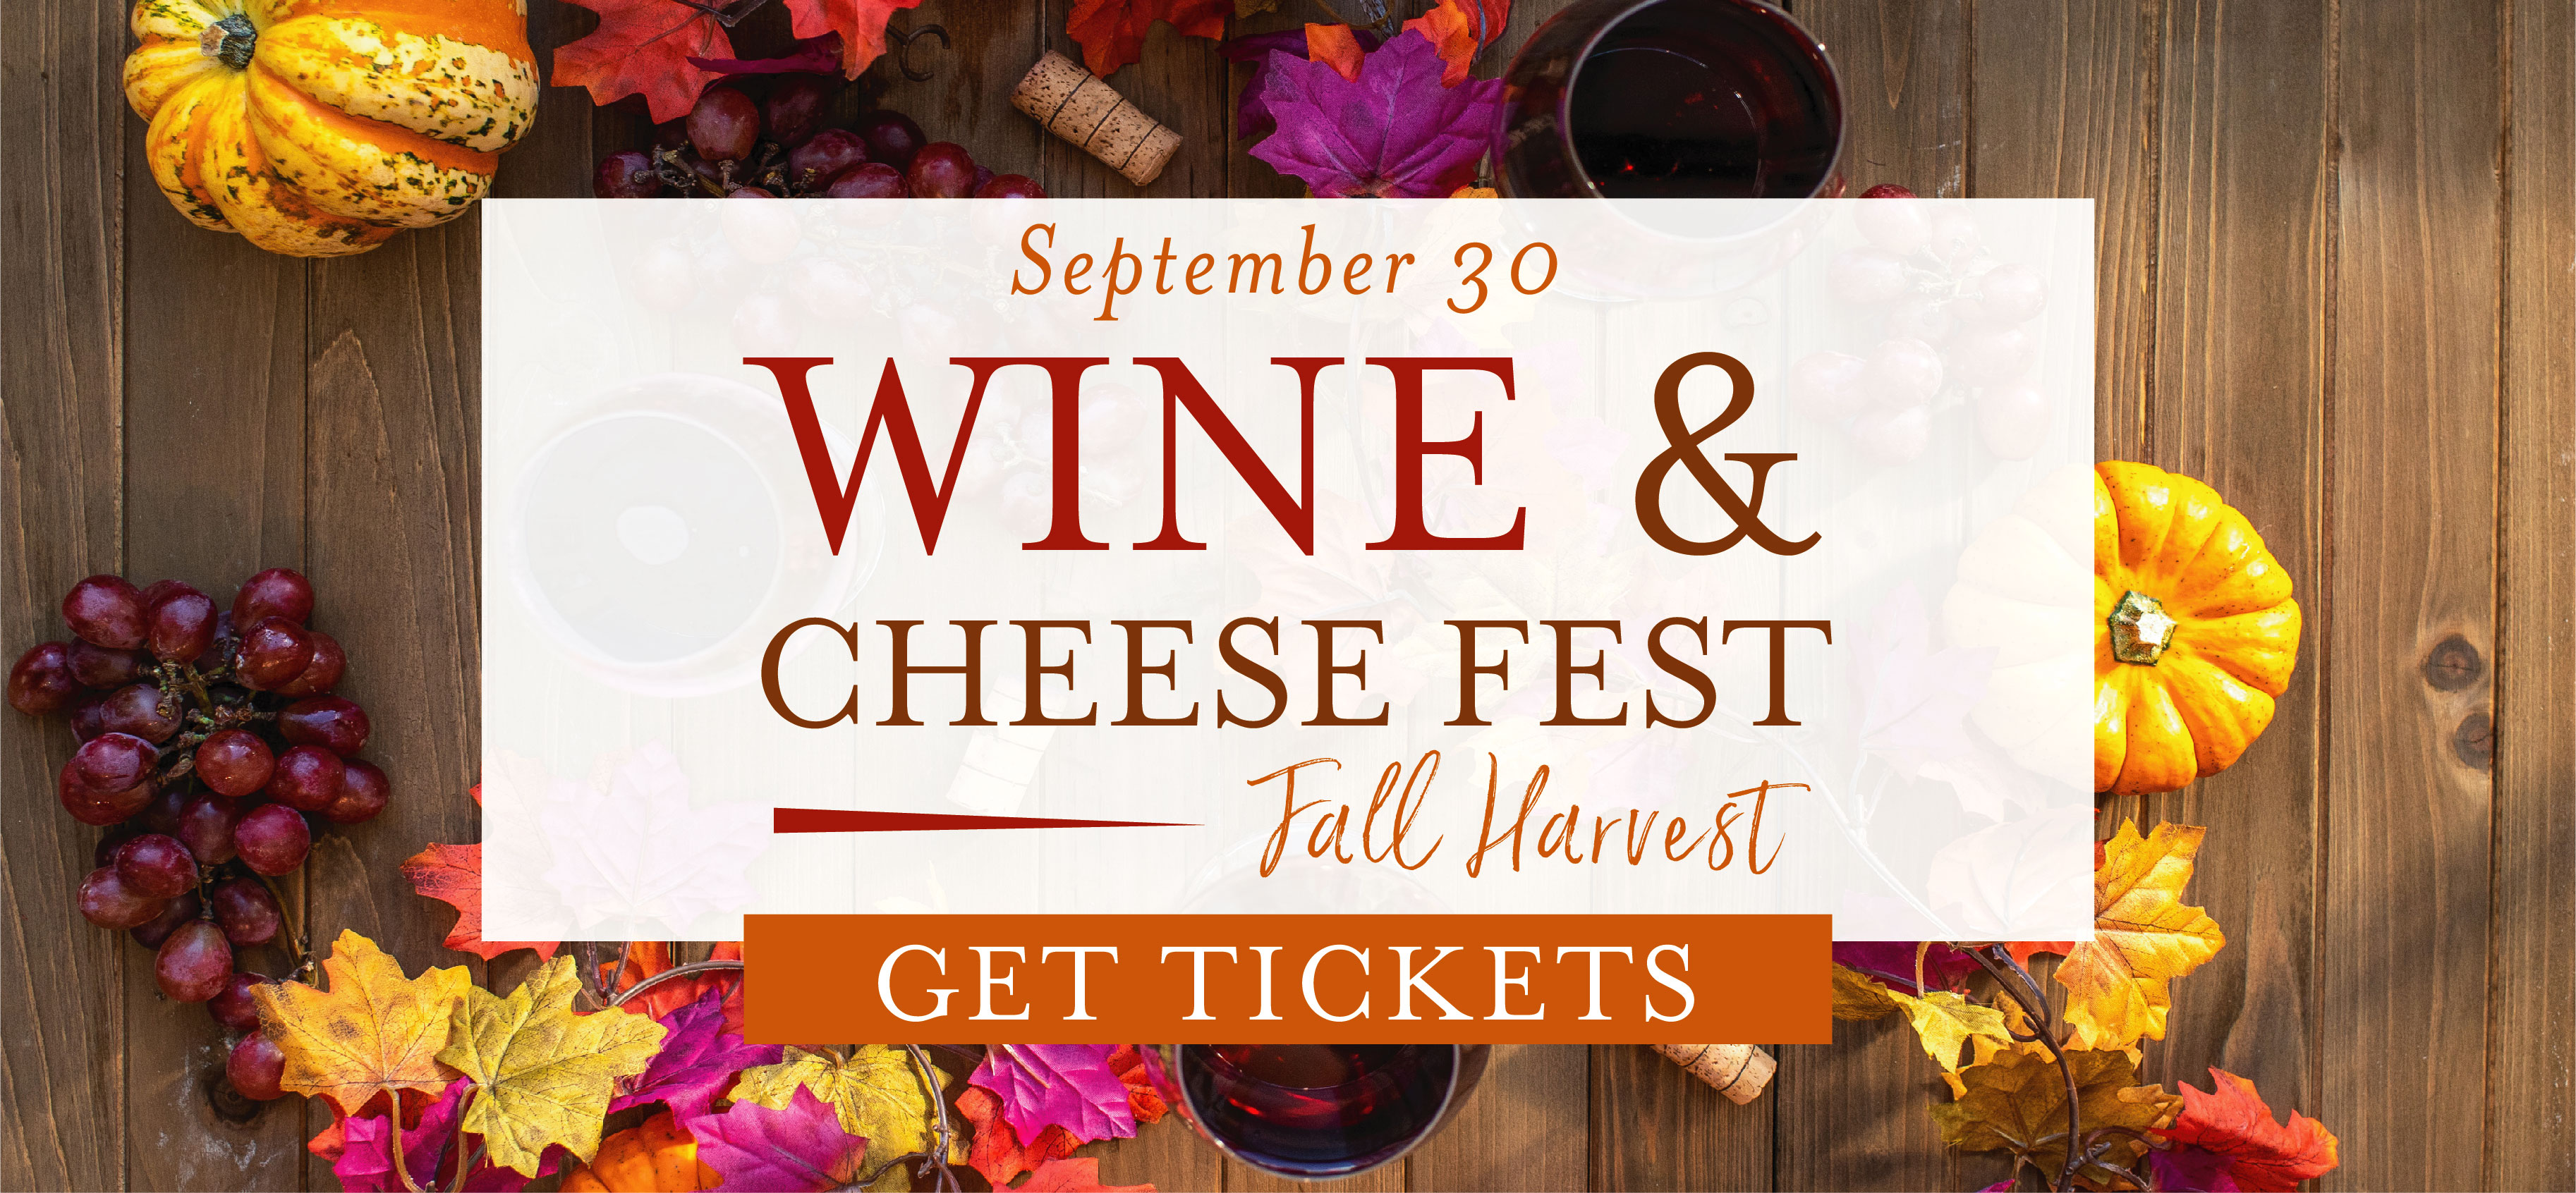 Wine & Cheese Fest: Fall Harvest